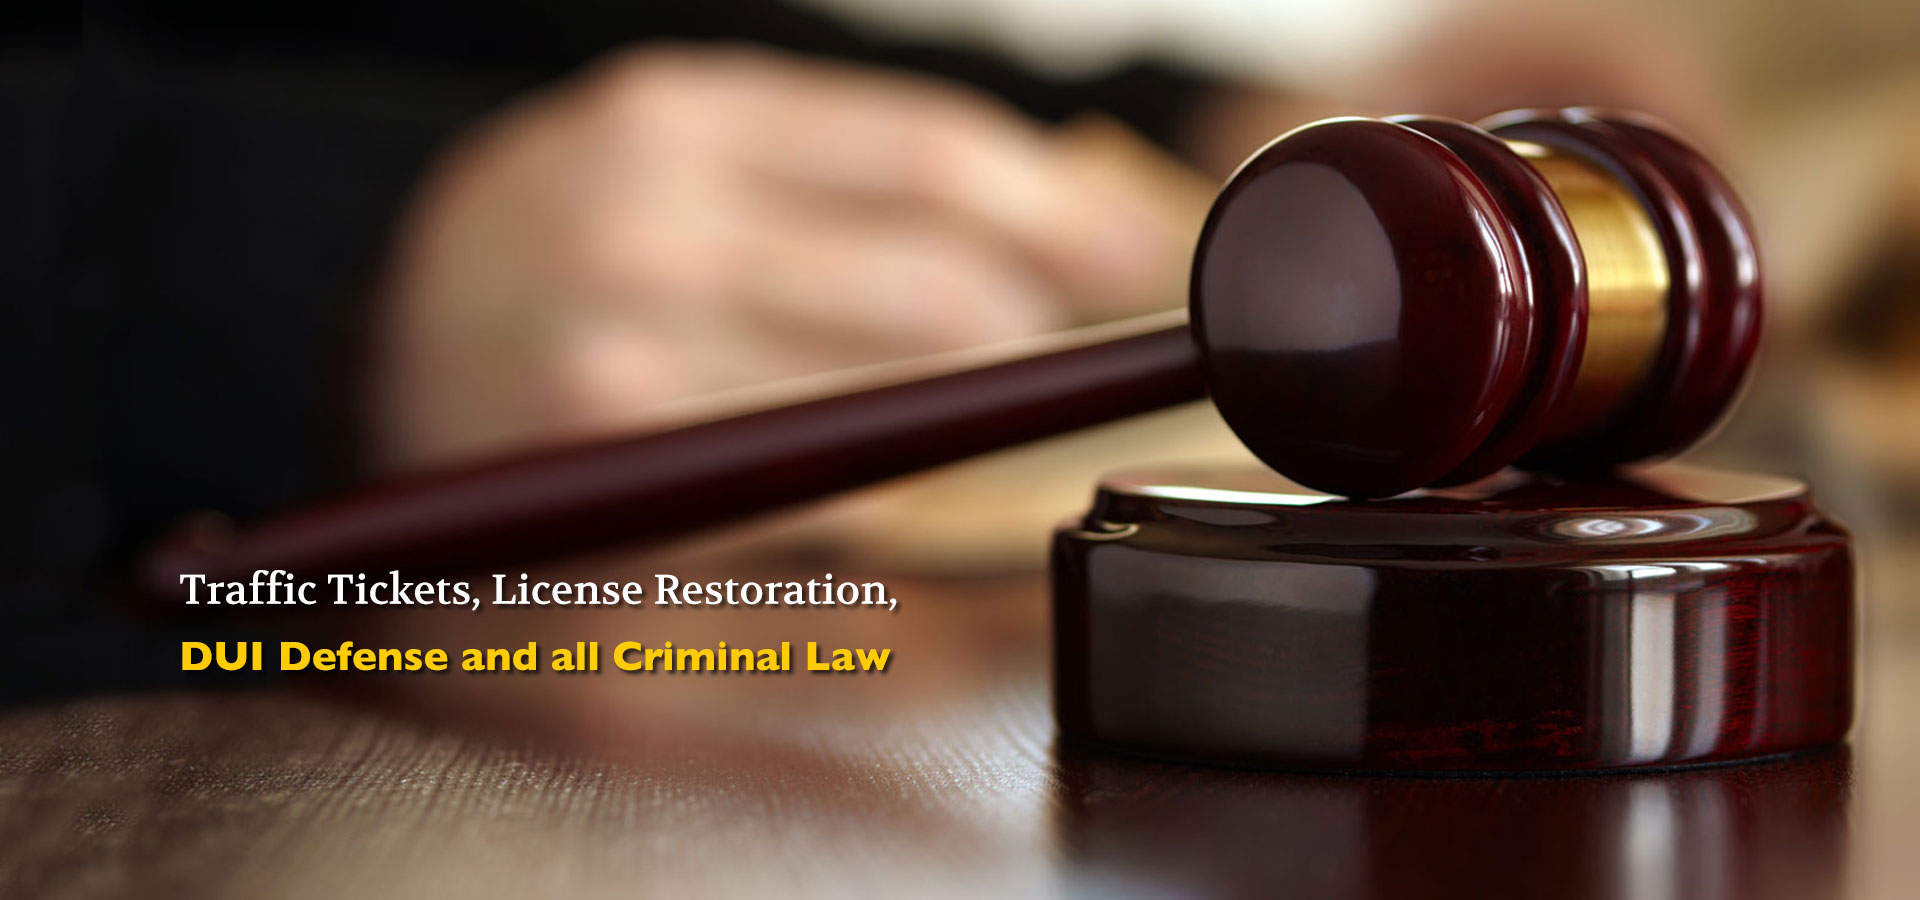 Redford Charter Township DUI Lawyers MI